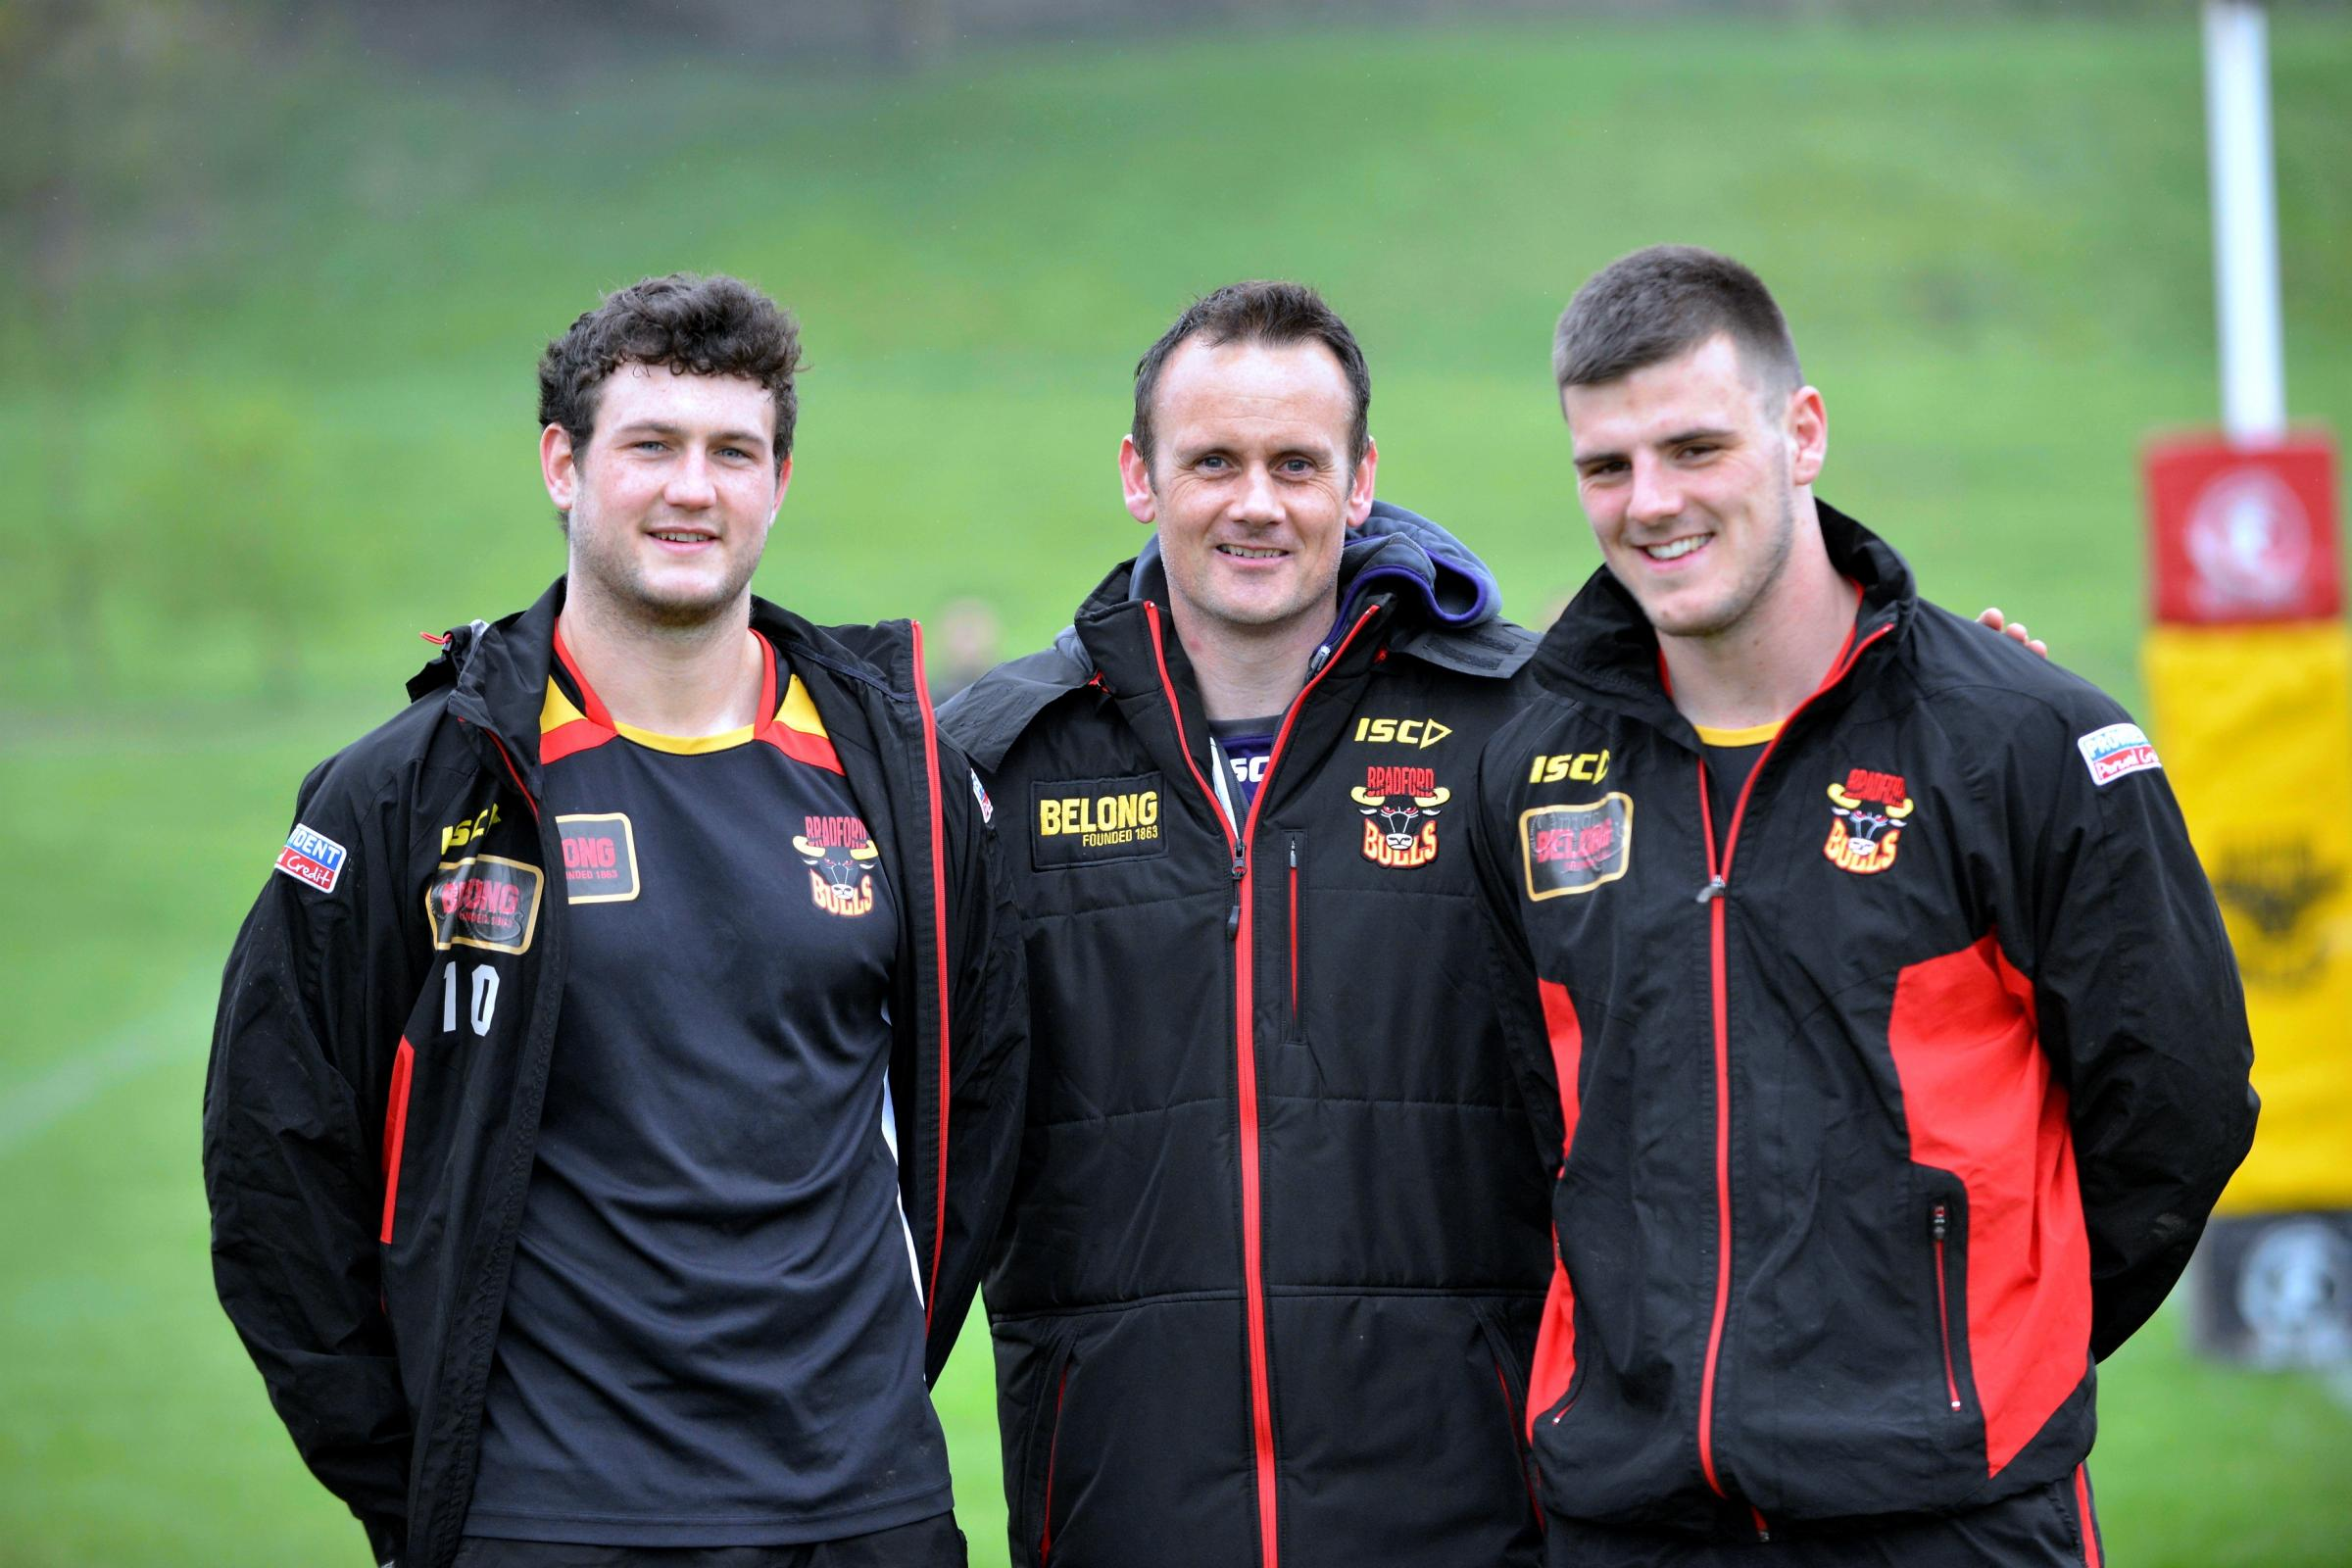 Bulls coach Francis Cummins with Joe Arundel, right, and fellow loan player Jay Pitts